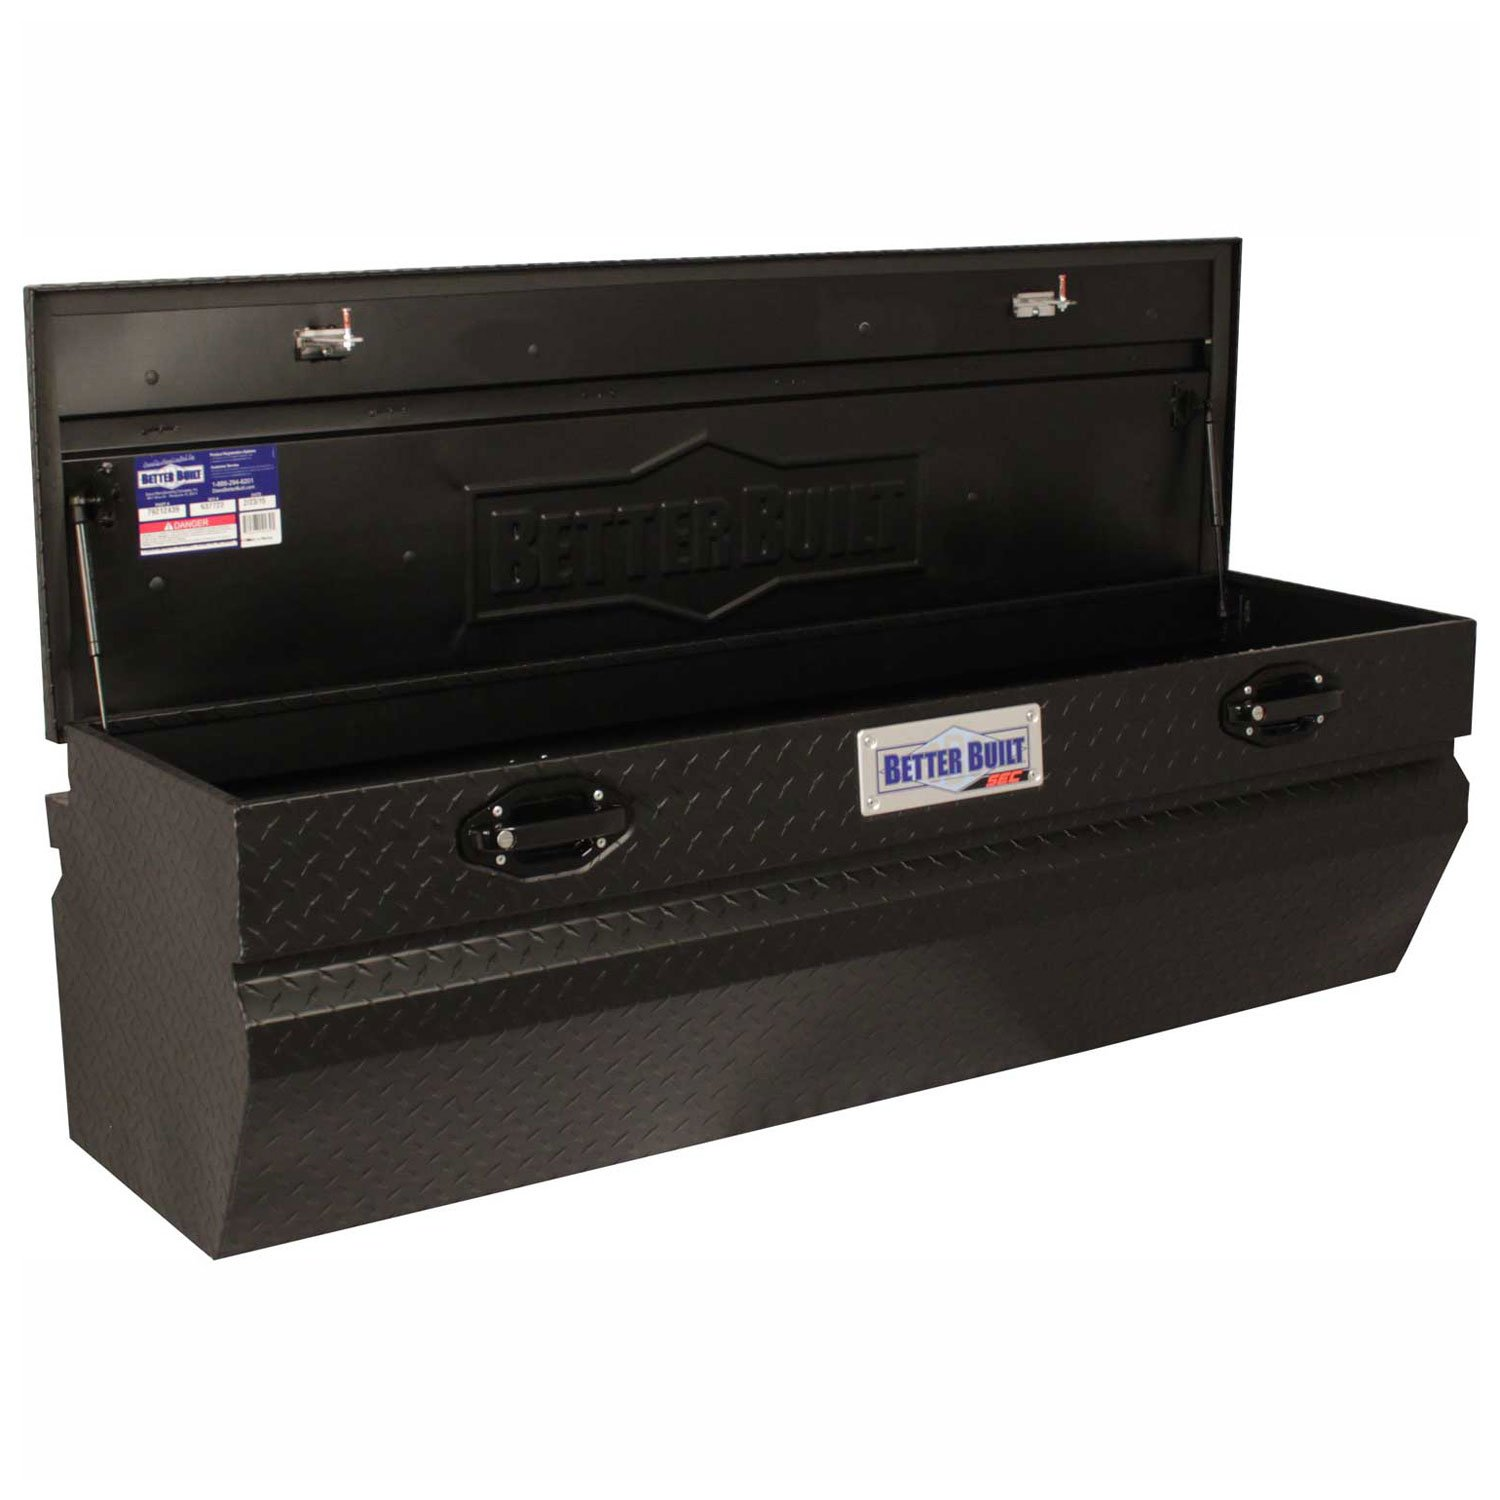 Better Built Aluminum 56'' Truck Chest, Matte Black, Single Lid - 79212438